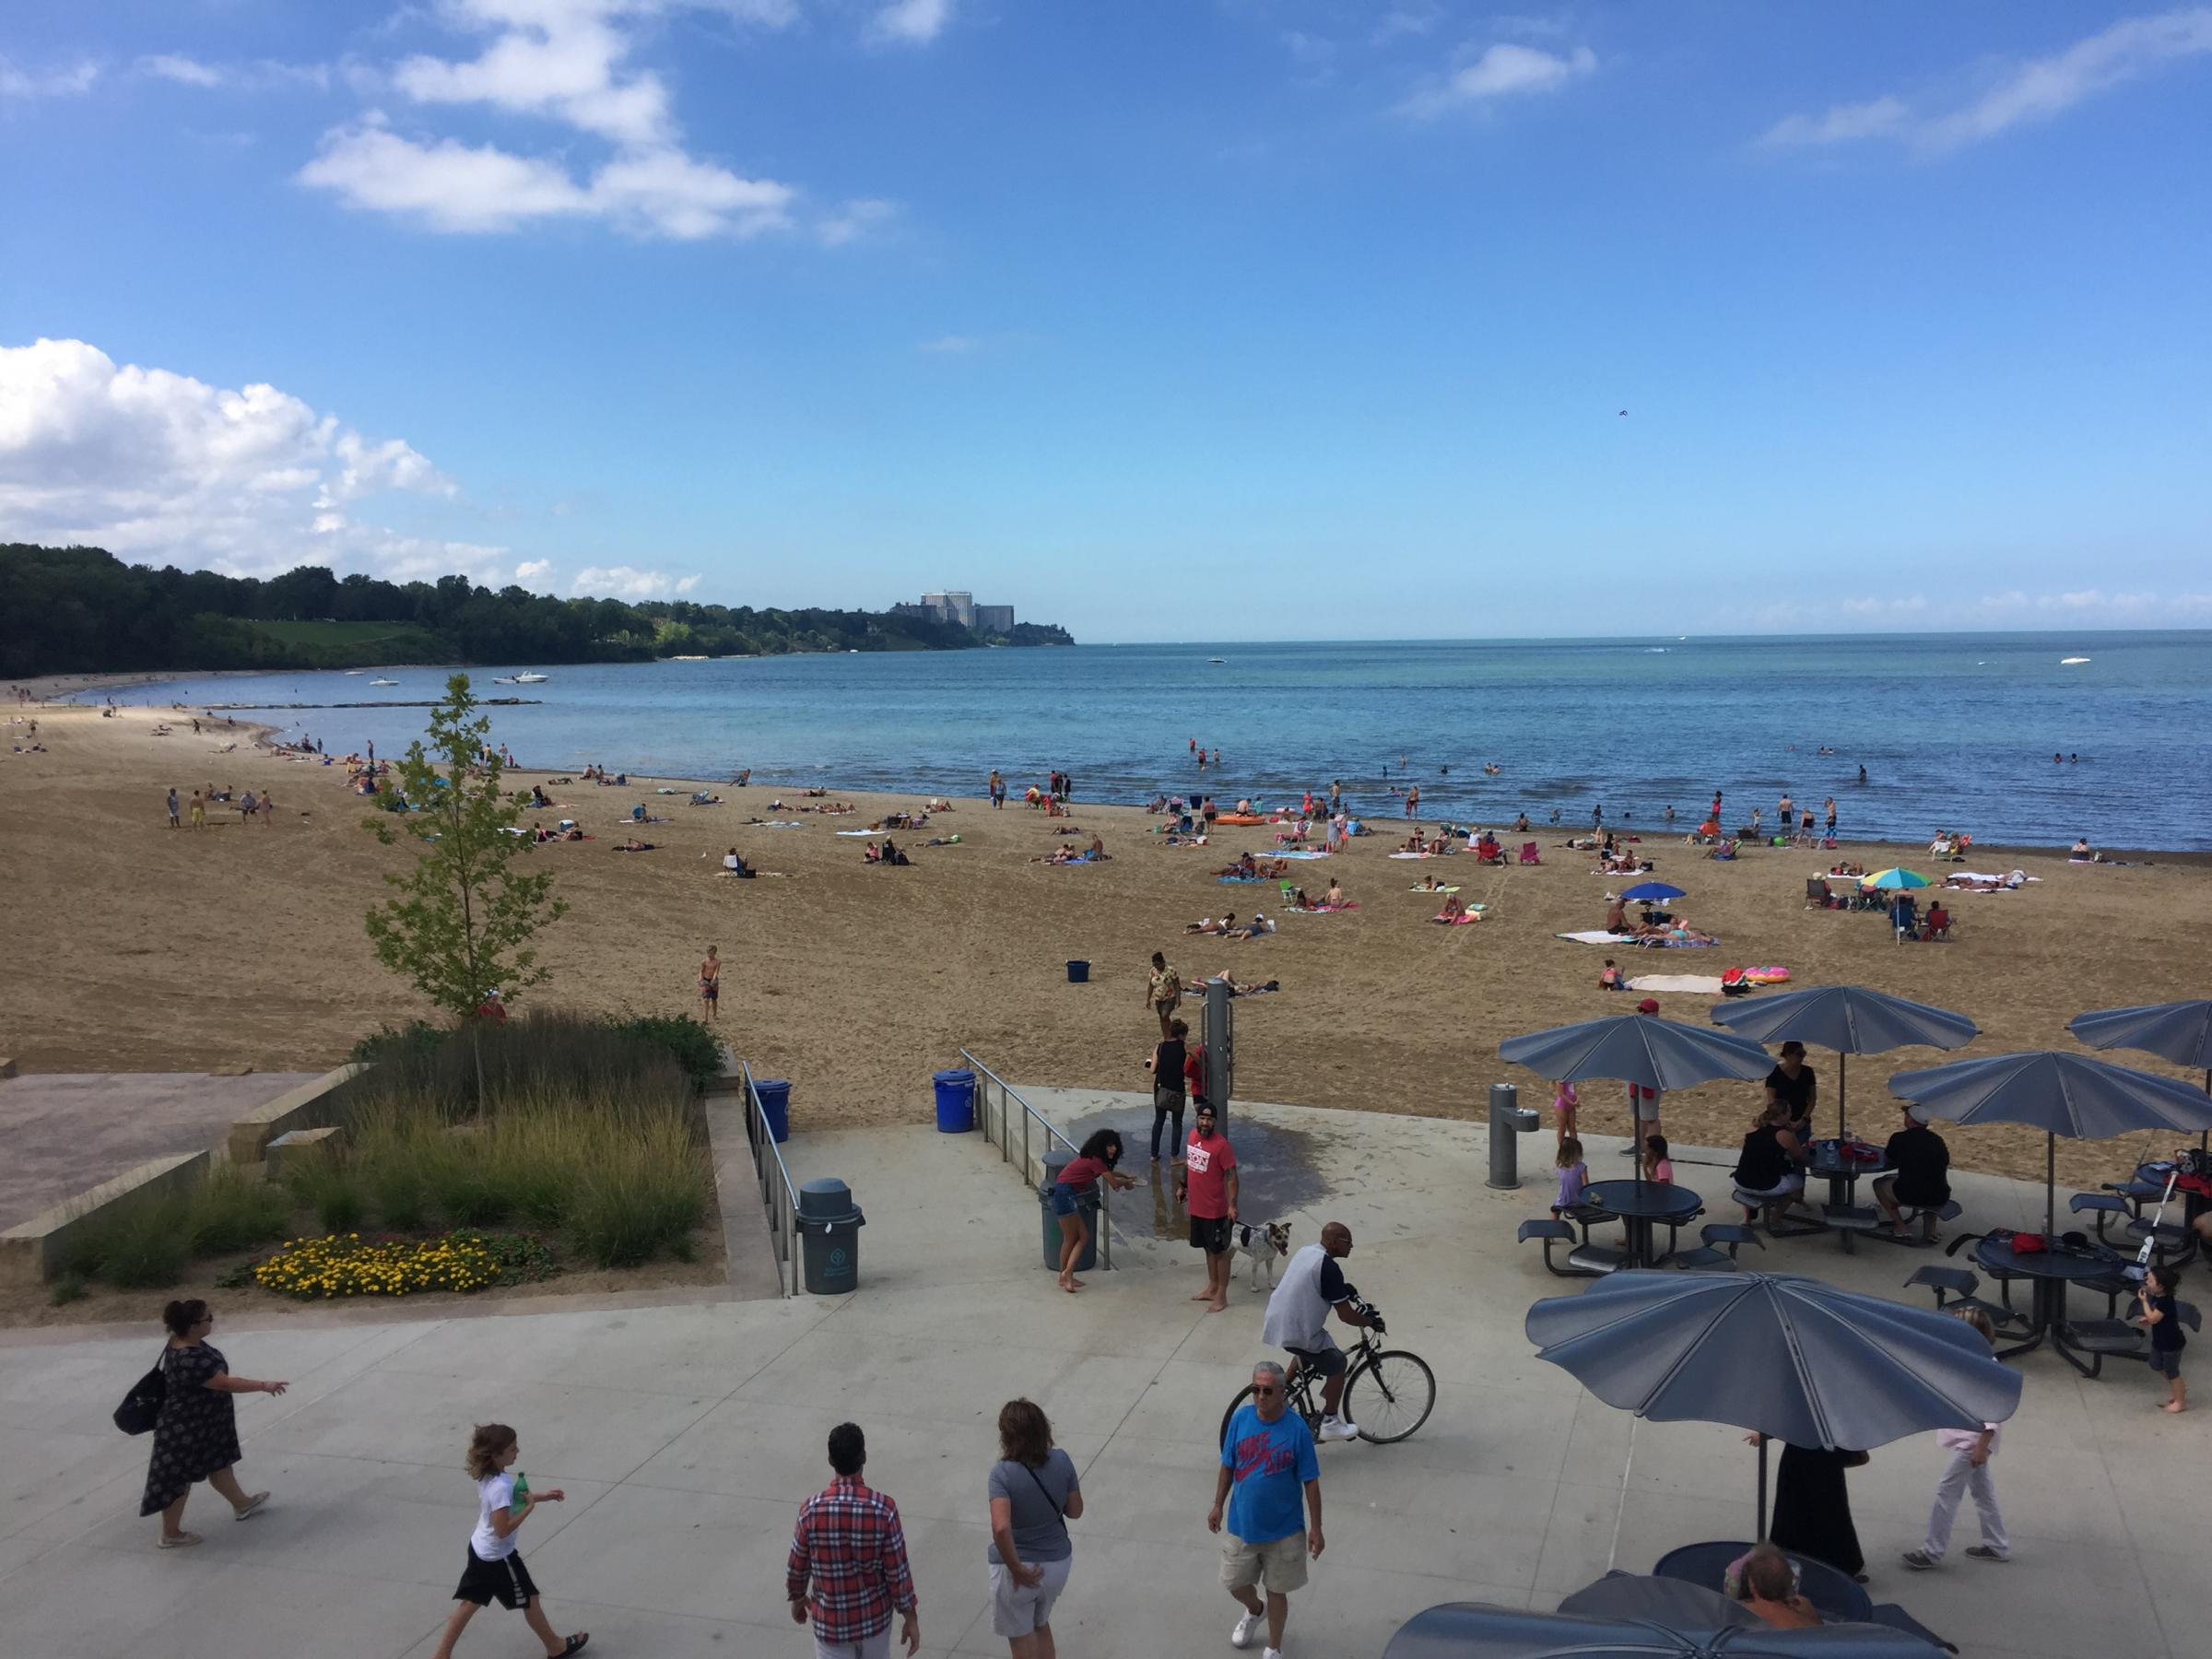 Edgewater Beach In Cleveland Was The Site Of An Alliance For Great Adopt A Cleanup Event Over Weekend Additional Cleanups Will Take Place